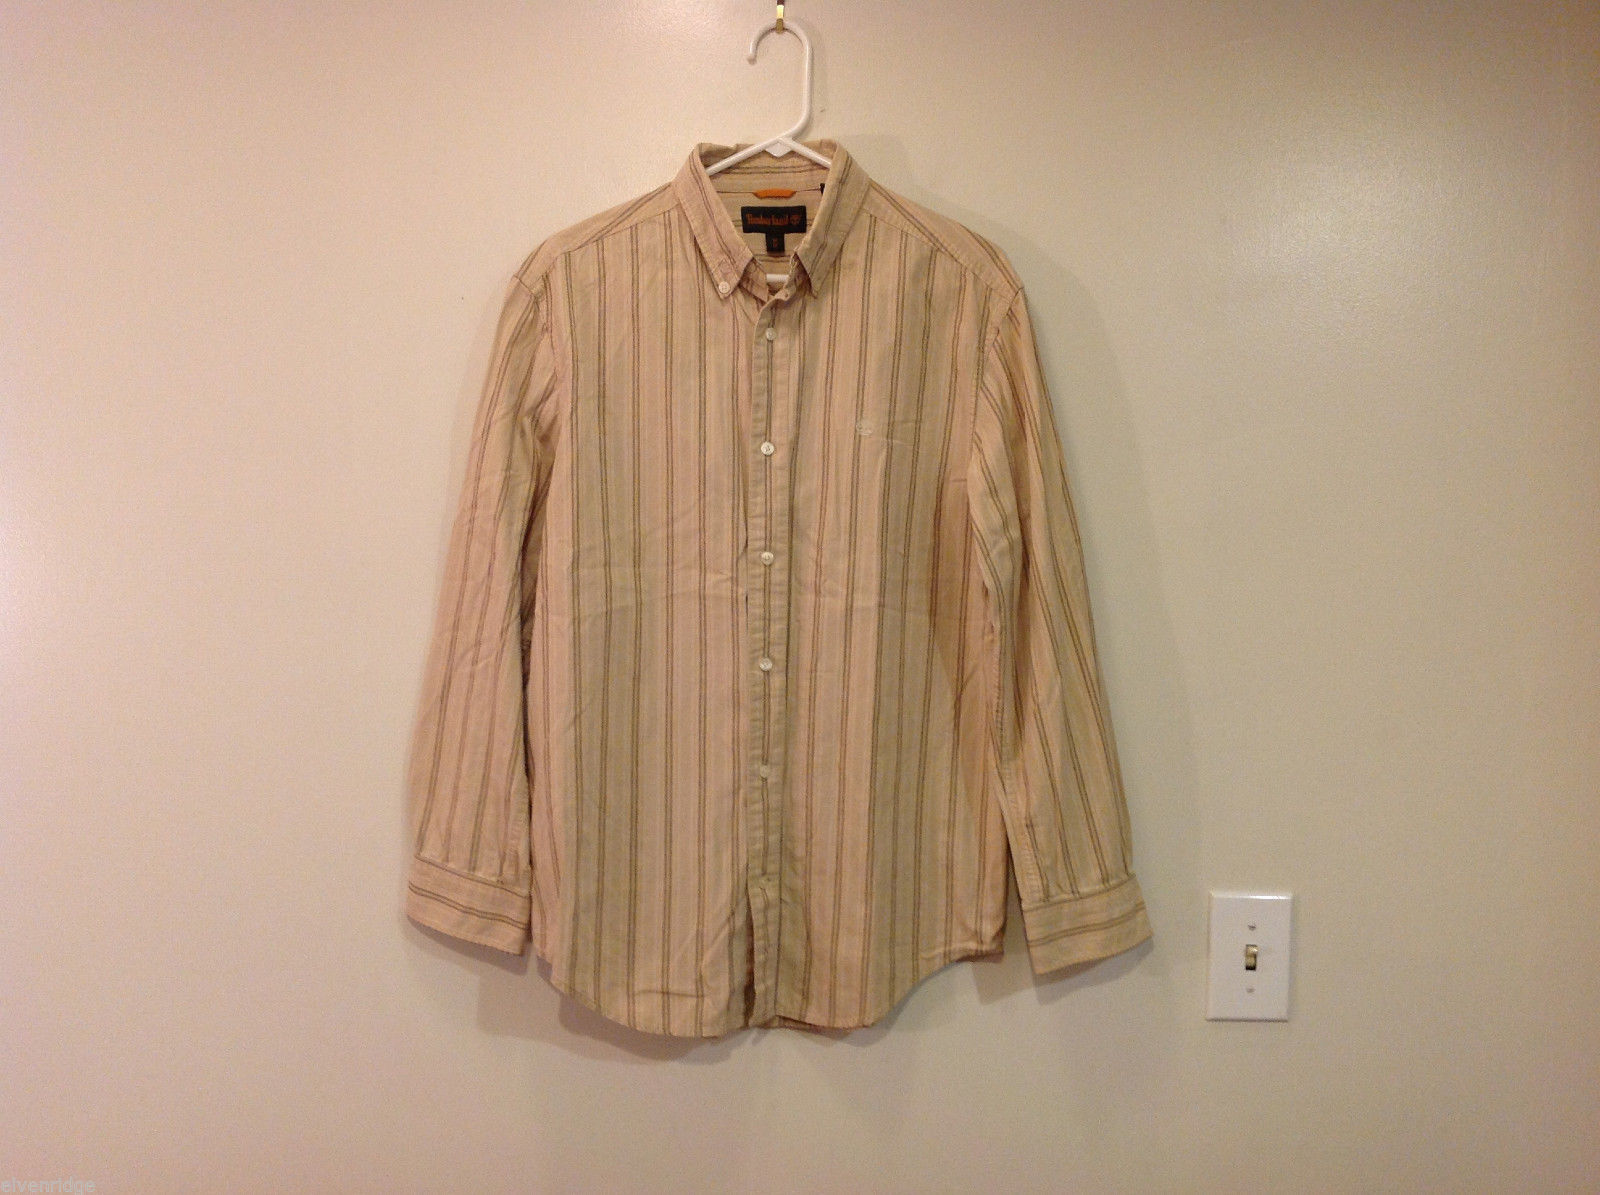 Timberland Striped Light Brown Beige Casual 100% cotton Shirt, Size M